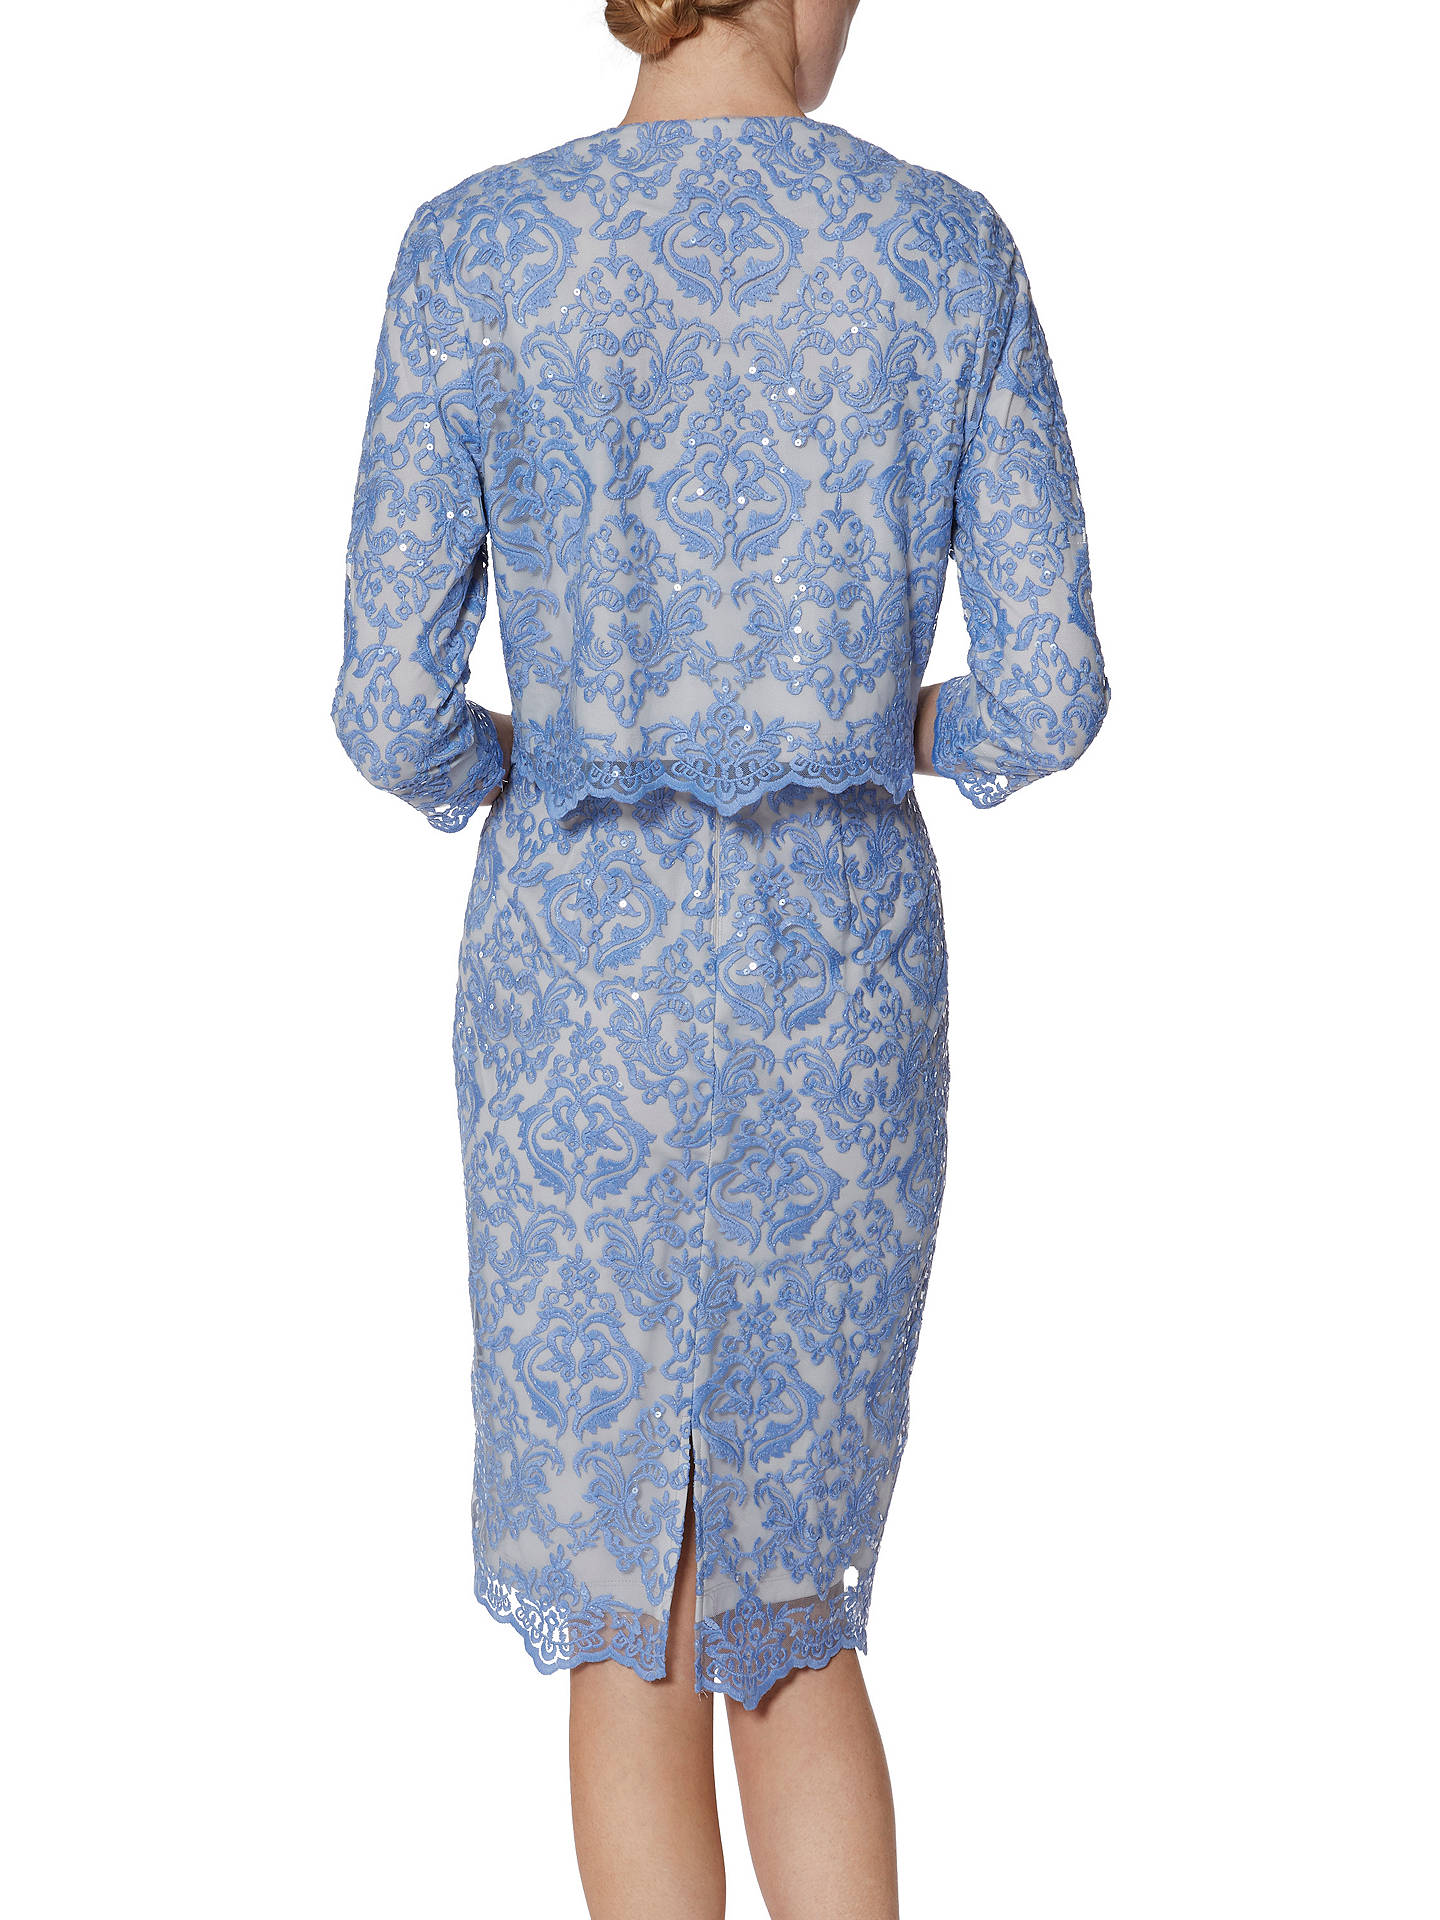 BuyGina Bacconi Vera Embroidered Dress, China Blue, 8 Online at johnlewis.com